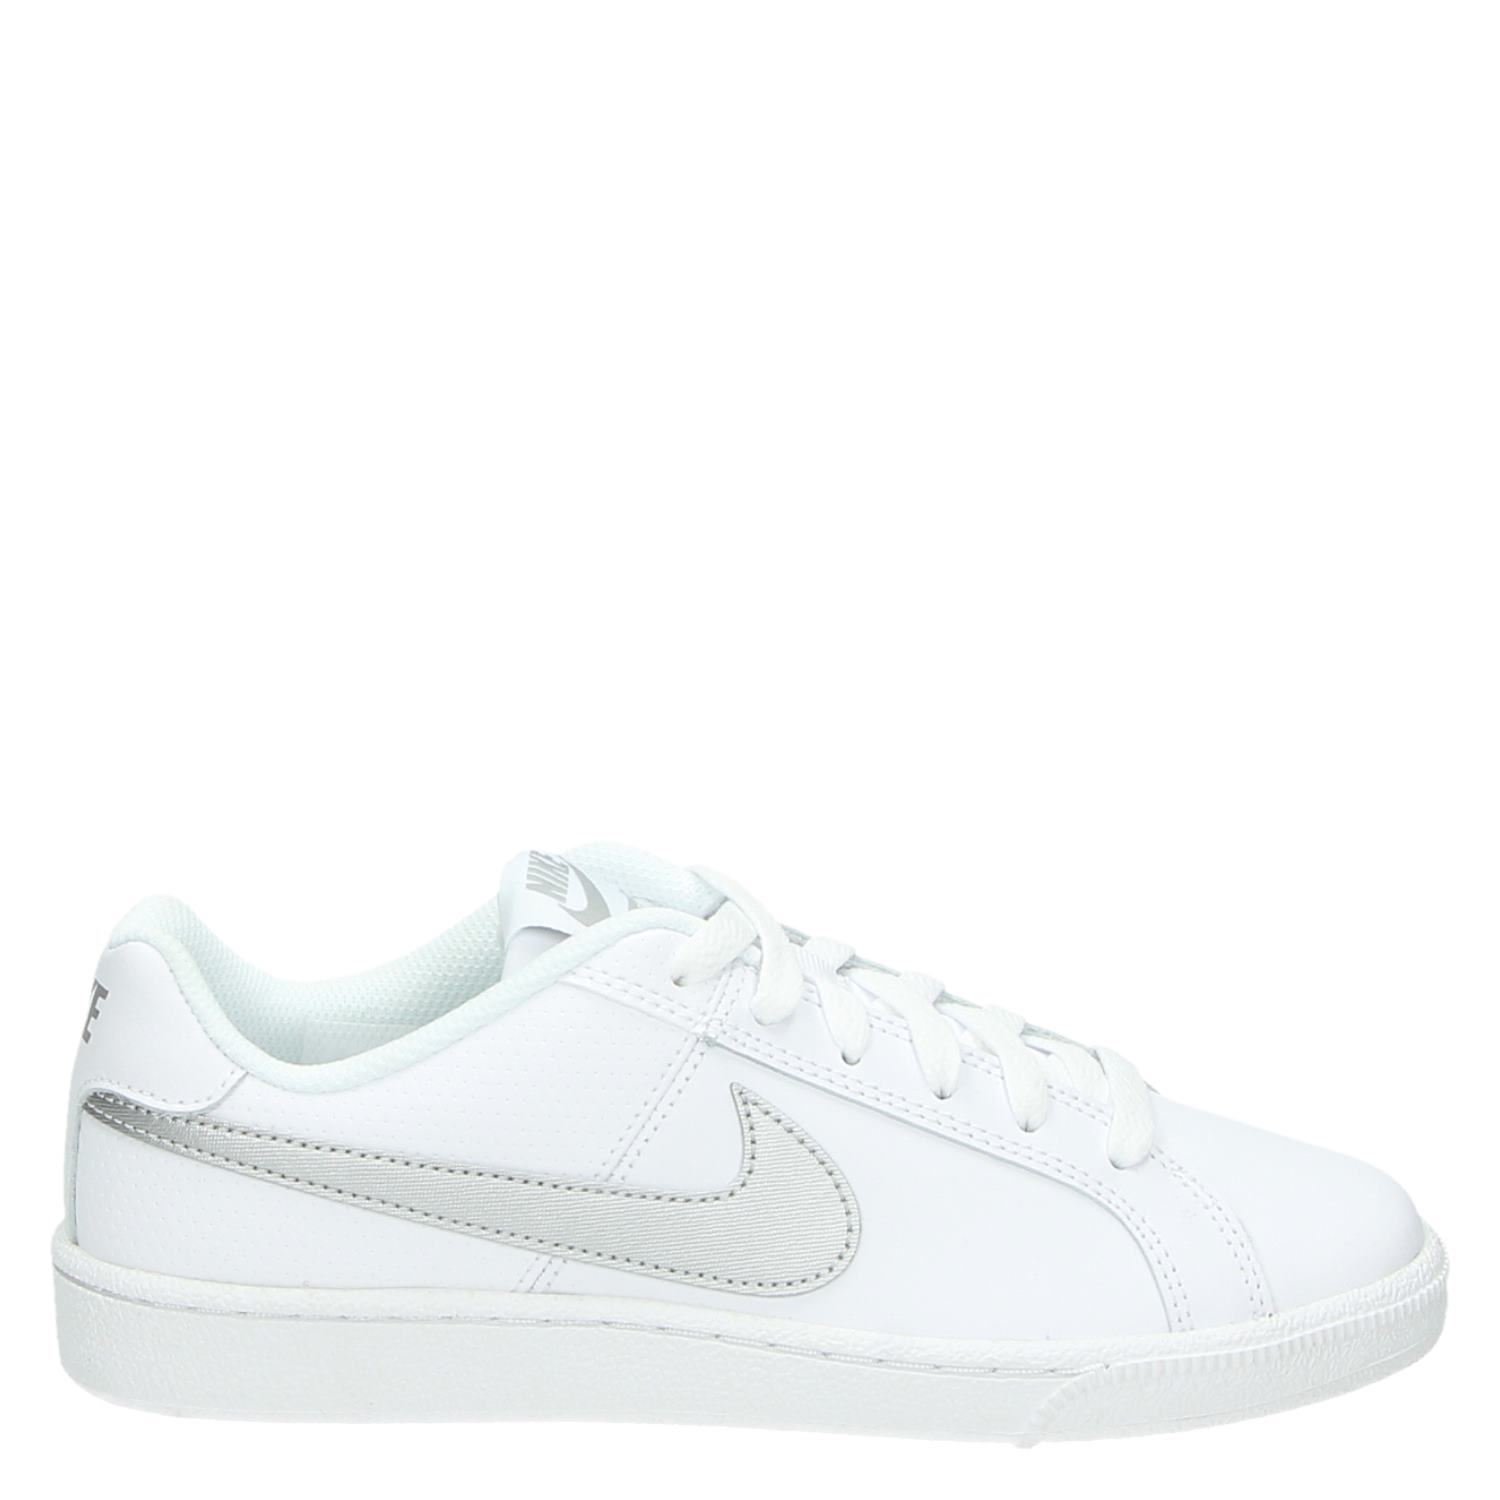 low priced 64c02 c5dcd Nike Court Royale dames lage sneakers